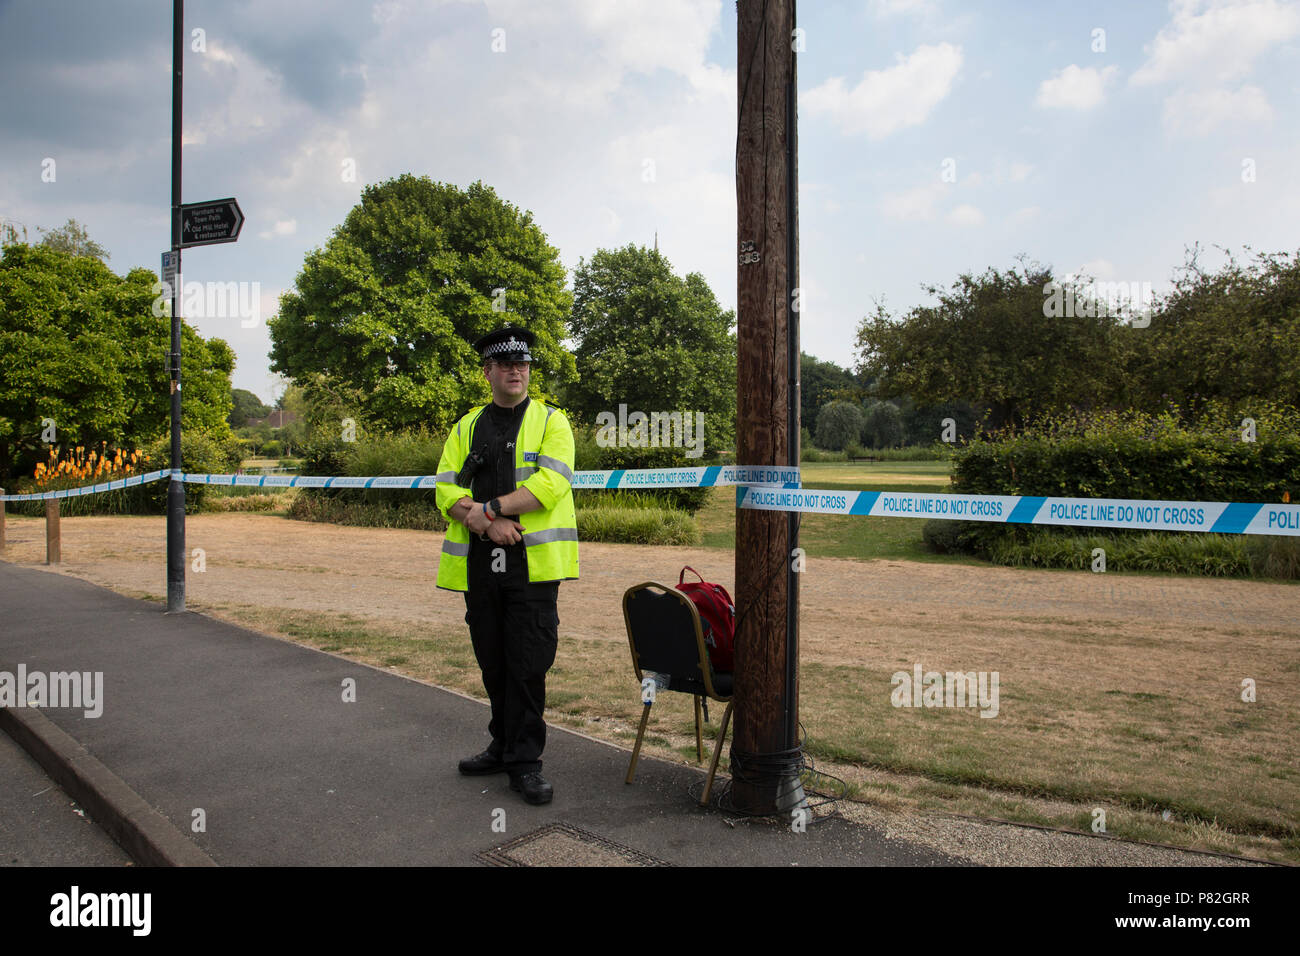 Queen Elizabeth gardens in Salisbury where Detectives are searching for a container of novichok they believe may be the source of the contamination. - Stock Image